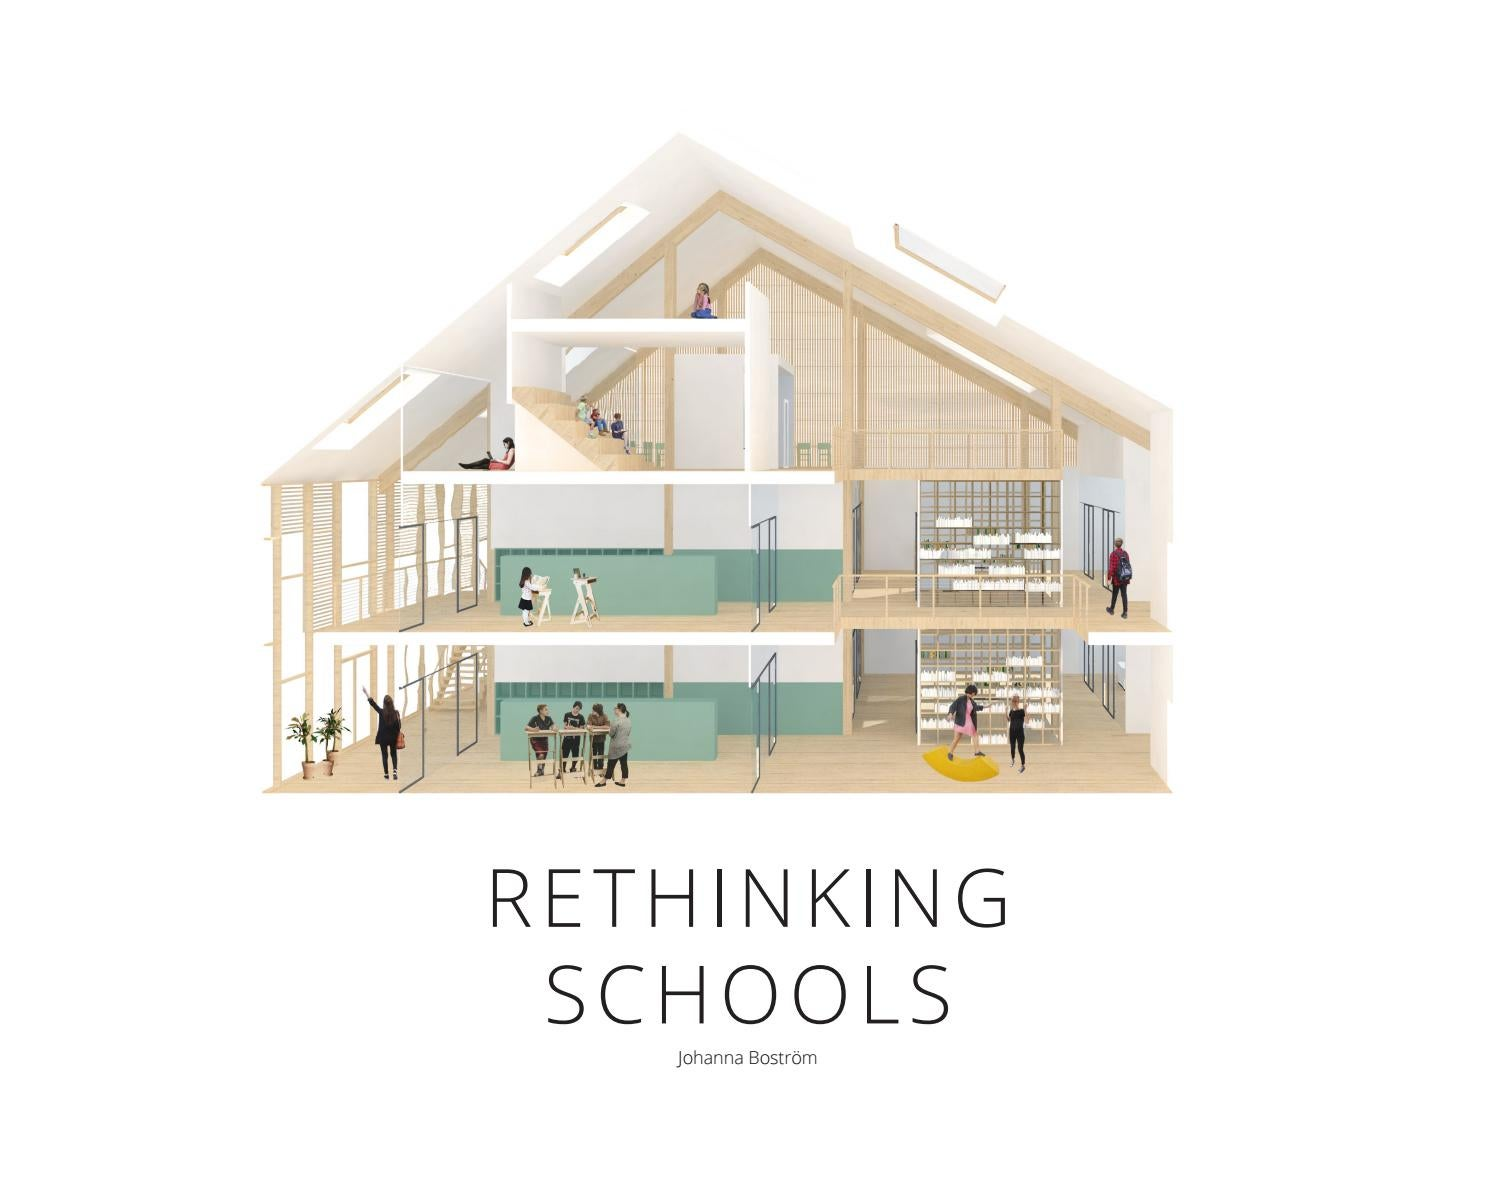 school of architecture thesis If you are an architecture student who needs help submitting your thesis to this collection, please review the submission guide [pdf], or contact the instructional design studio at (313) 578-0580 or ids@udmercyedu.